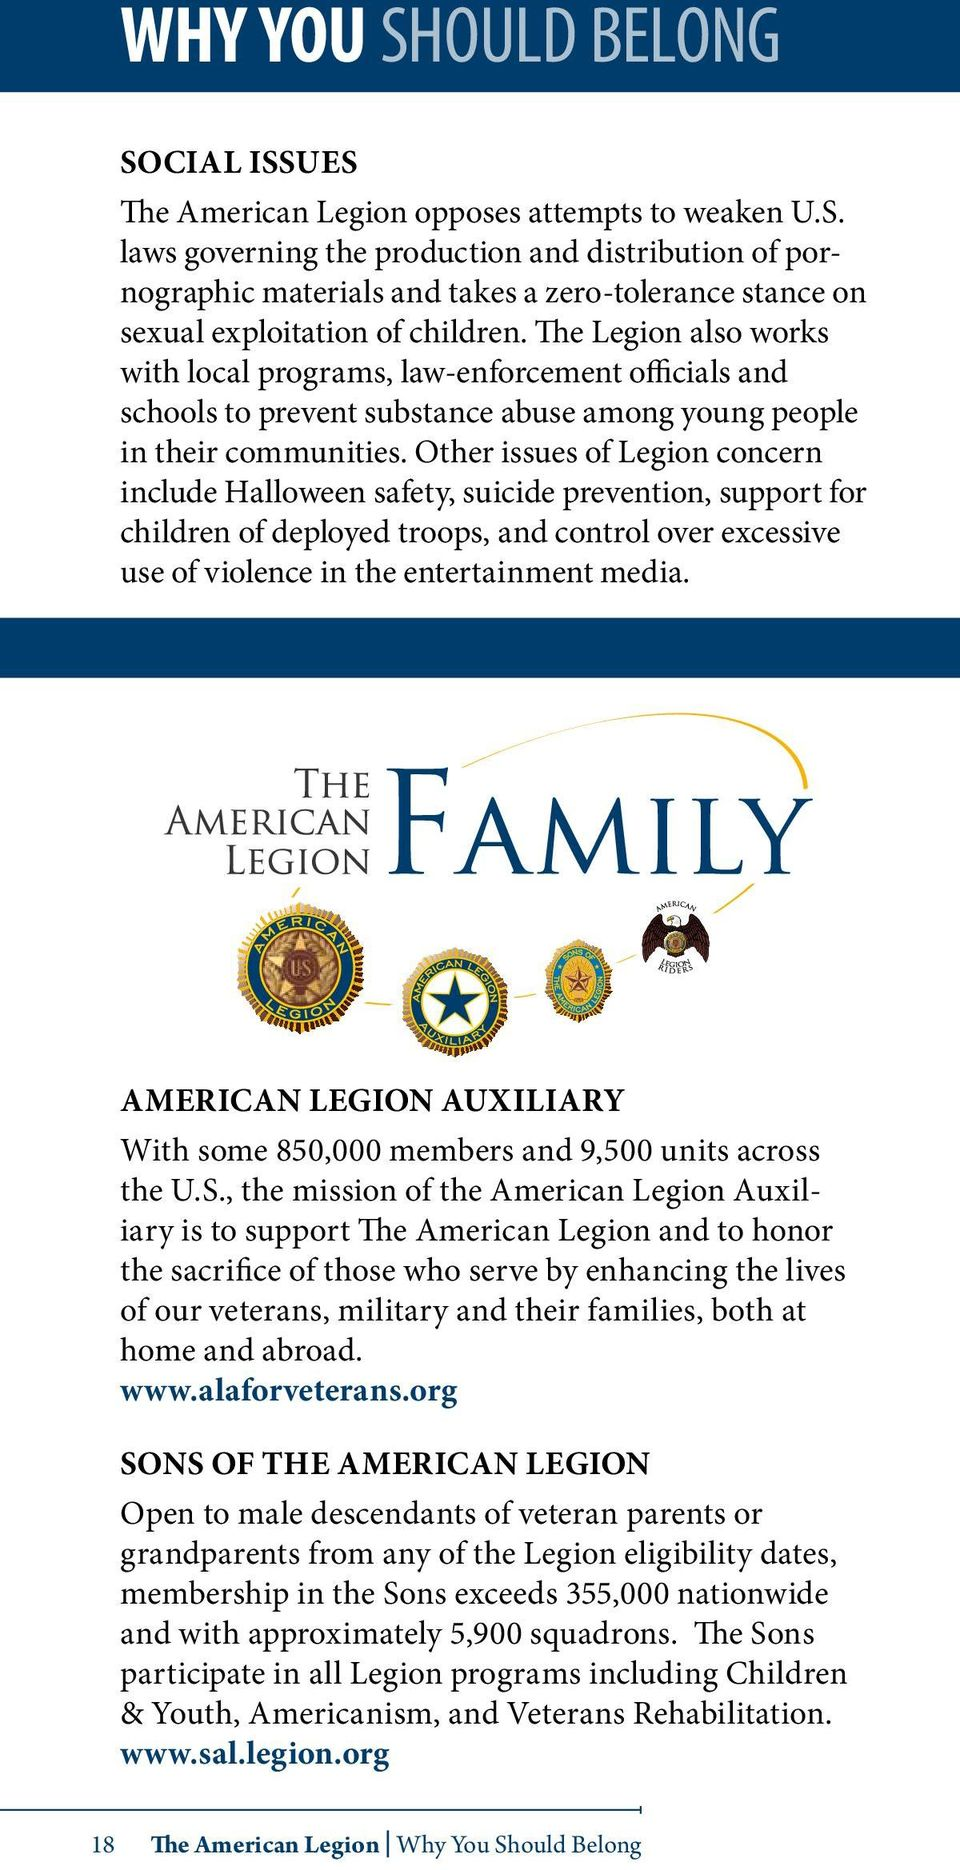 Other issues of Legion concern include Halloween safety, suicide prevention, support for children of deployed troops, and control over excessive use of violence in the entertainment media.